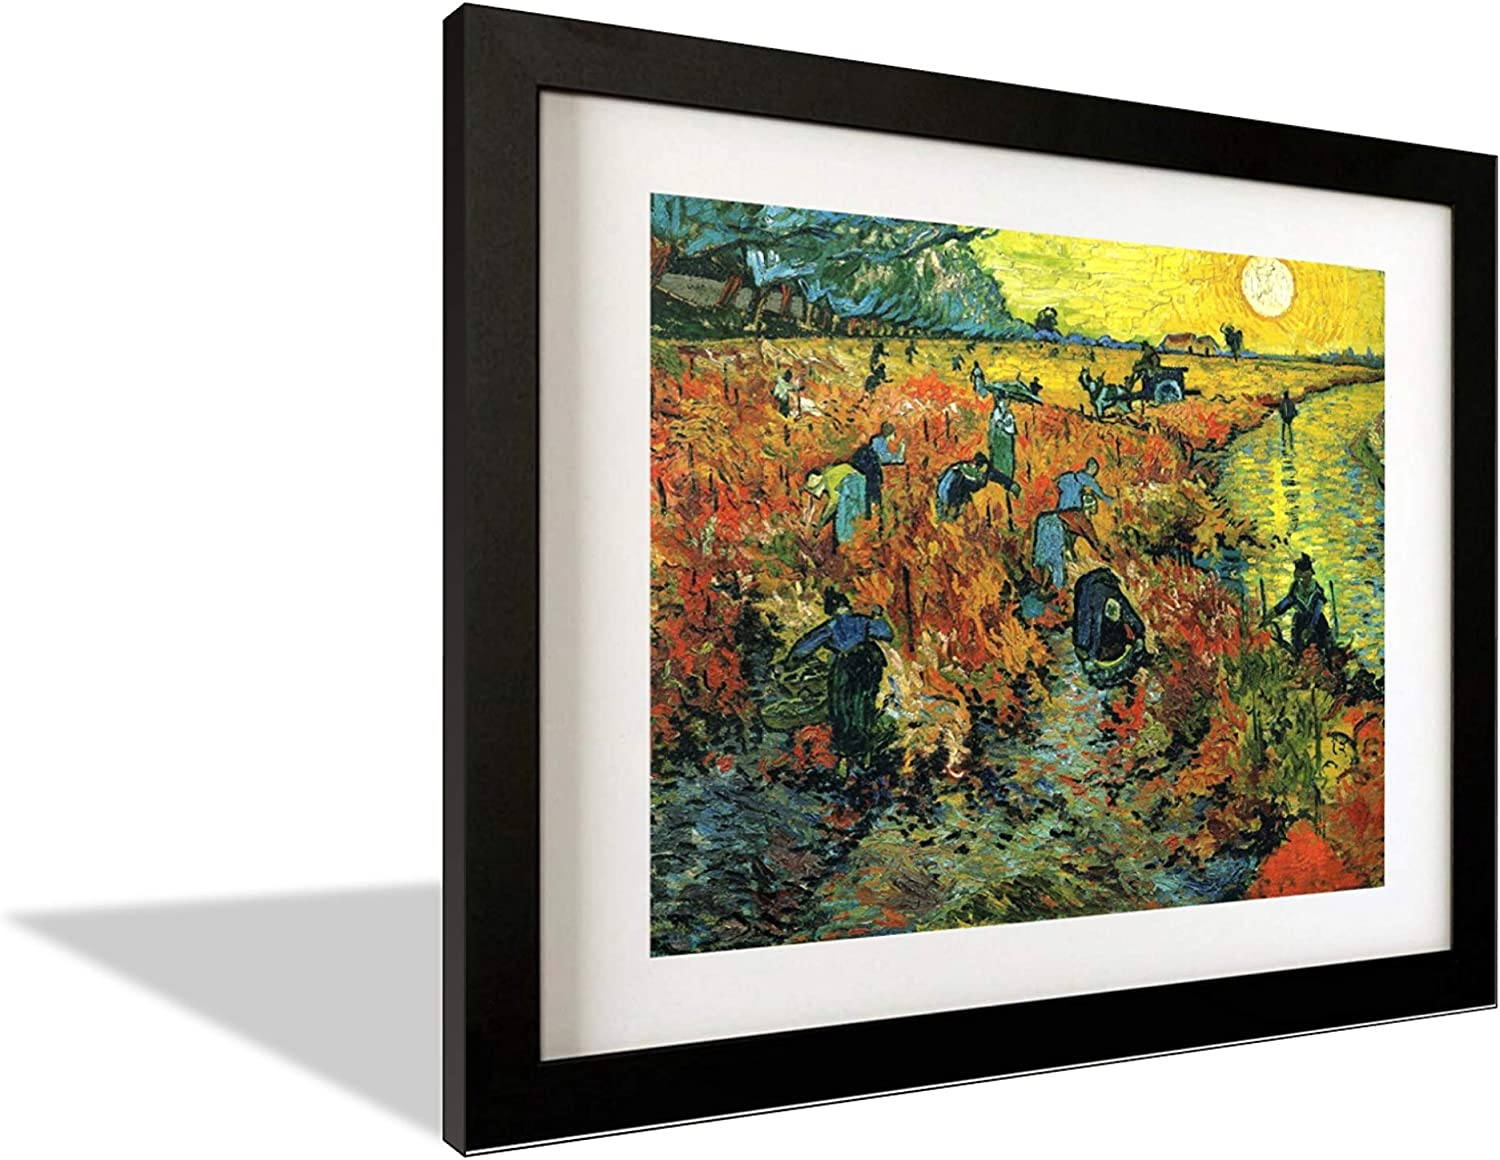 Red Vineyards Van Gogh Wall Art Framed with Popular product Black Indianapolis Mall Wood Posters